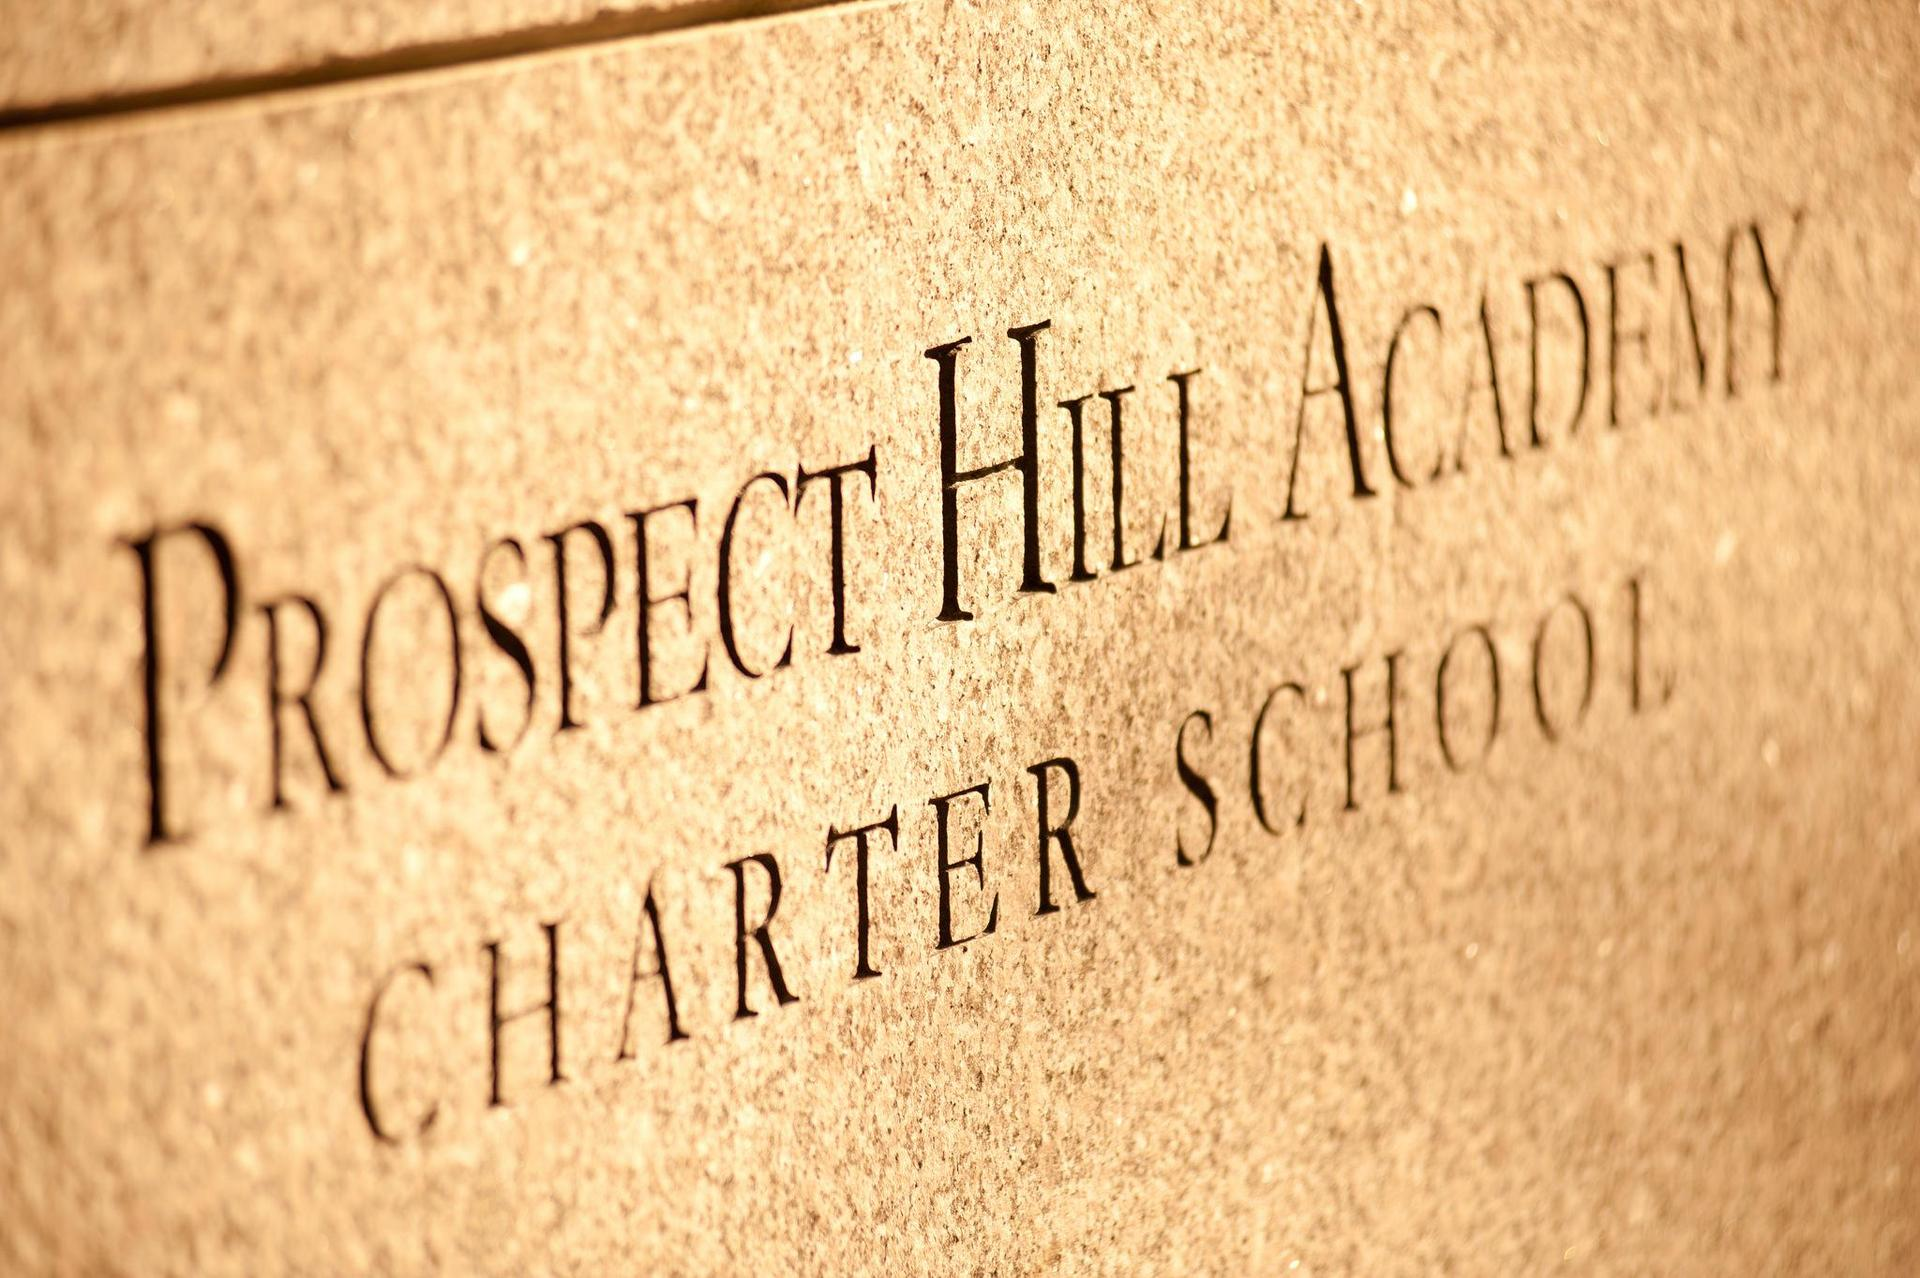 Prospect Hill Academy Charter School name